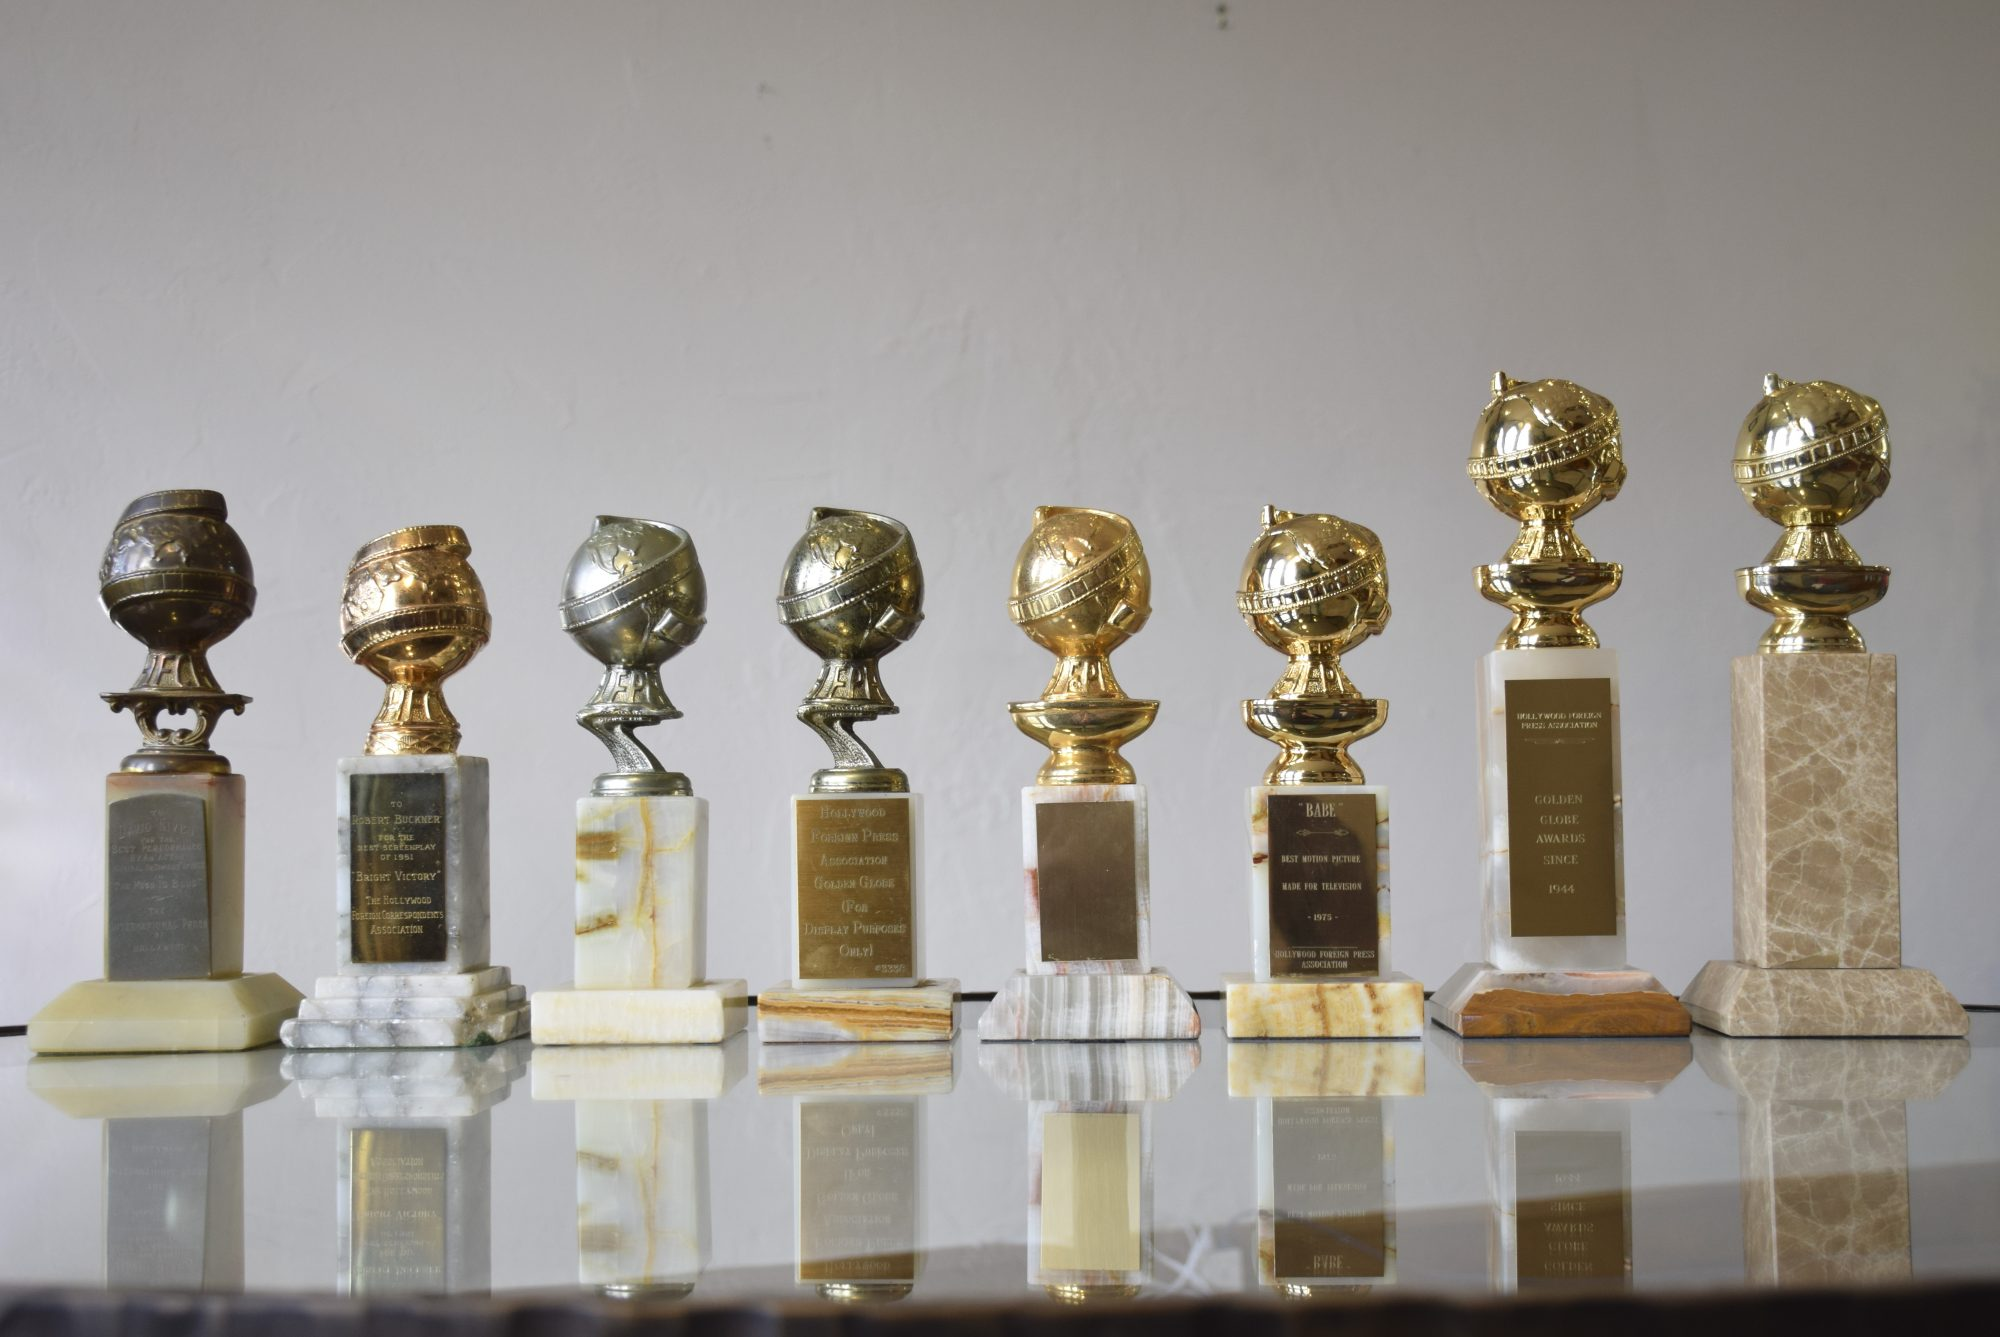 Golden Globe Awards from the 1950s - 2000s